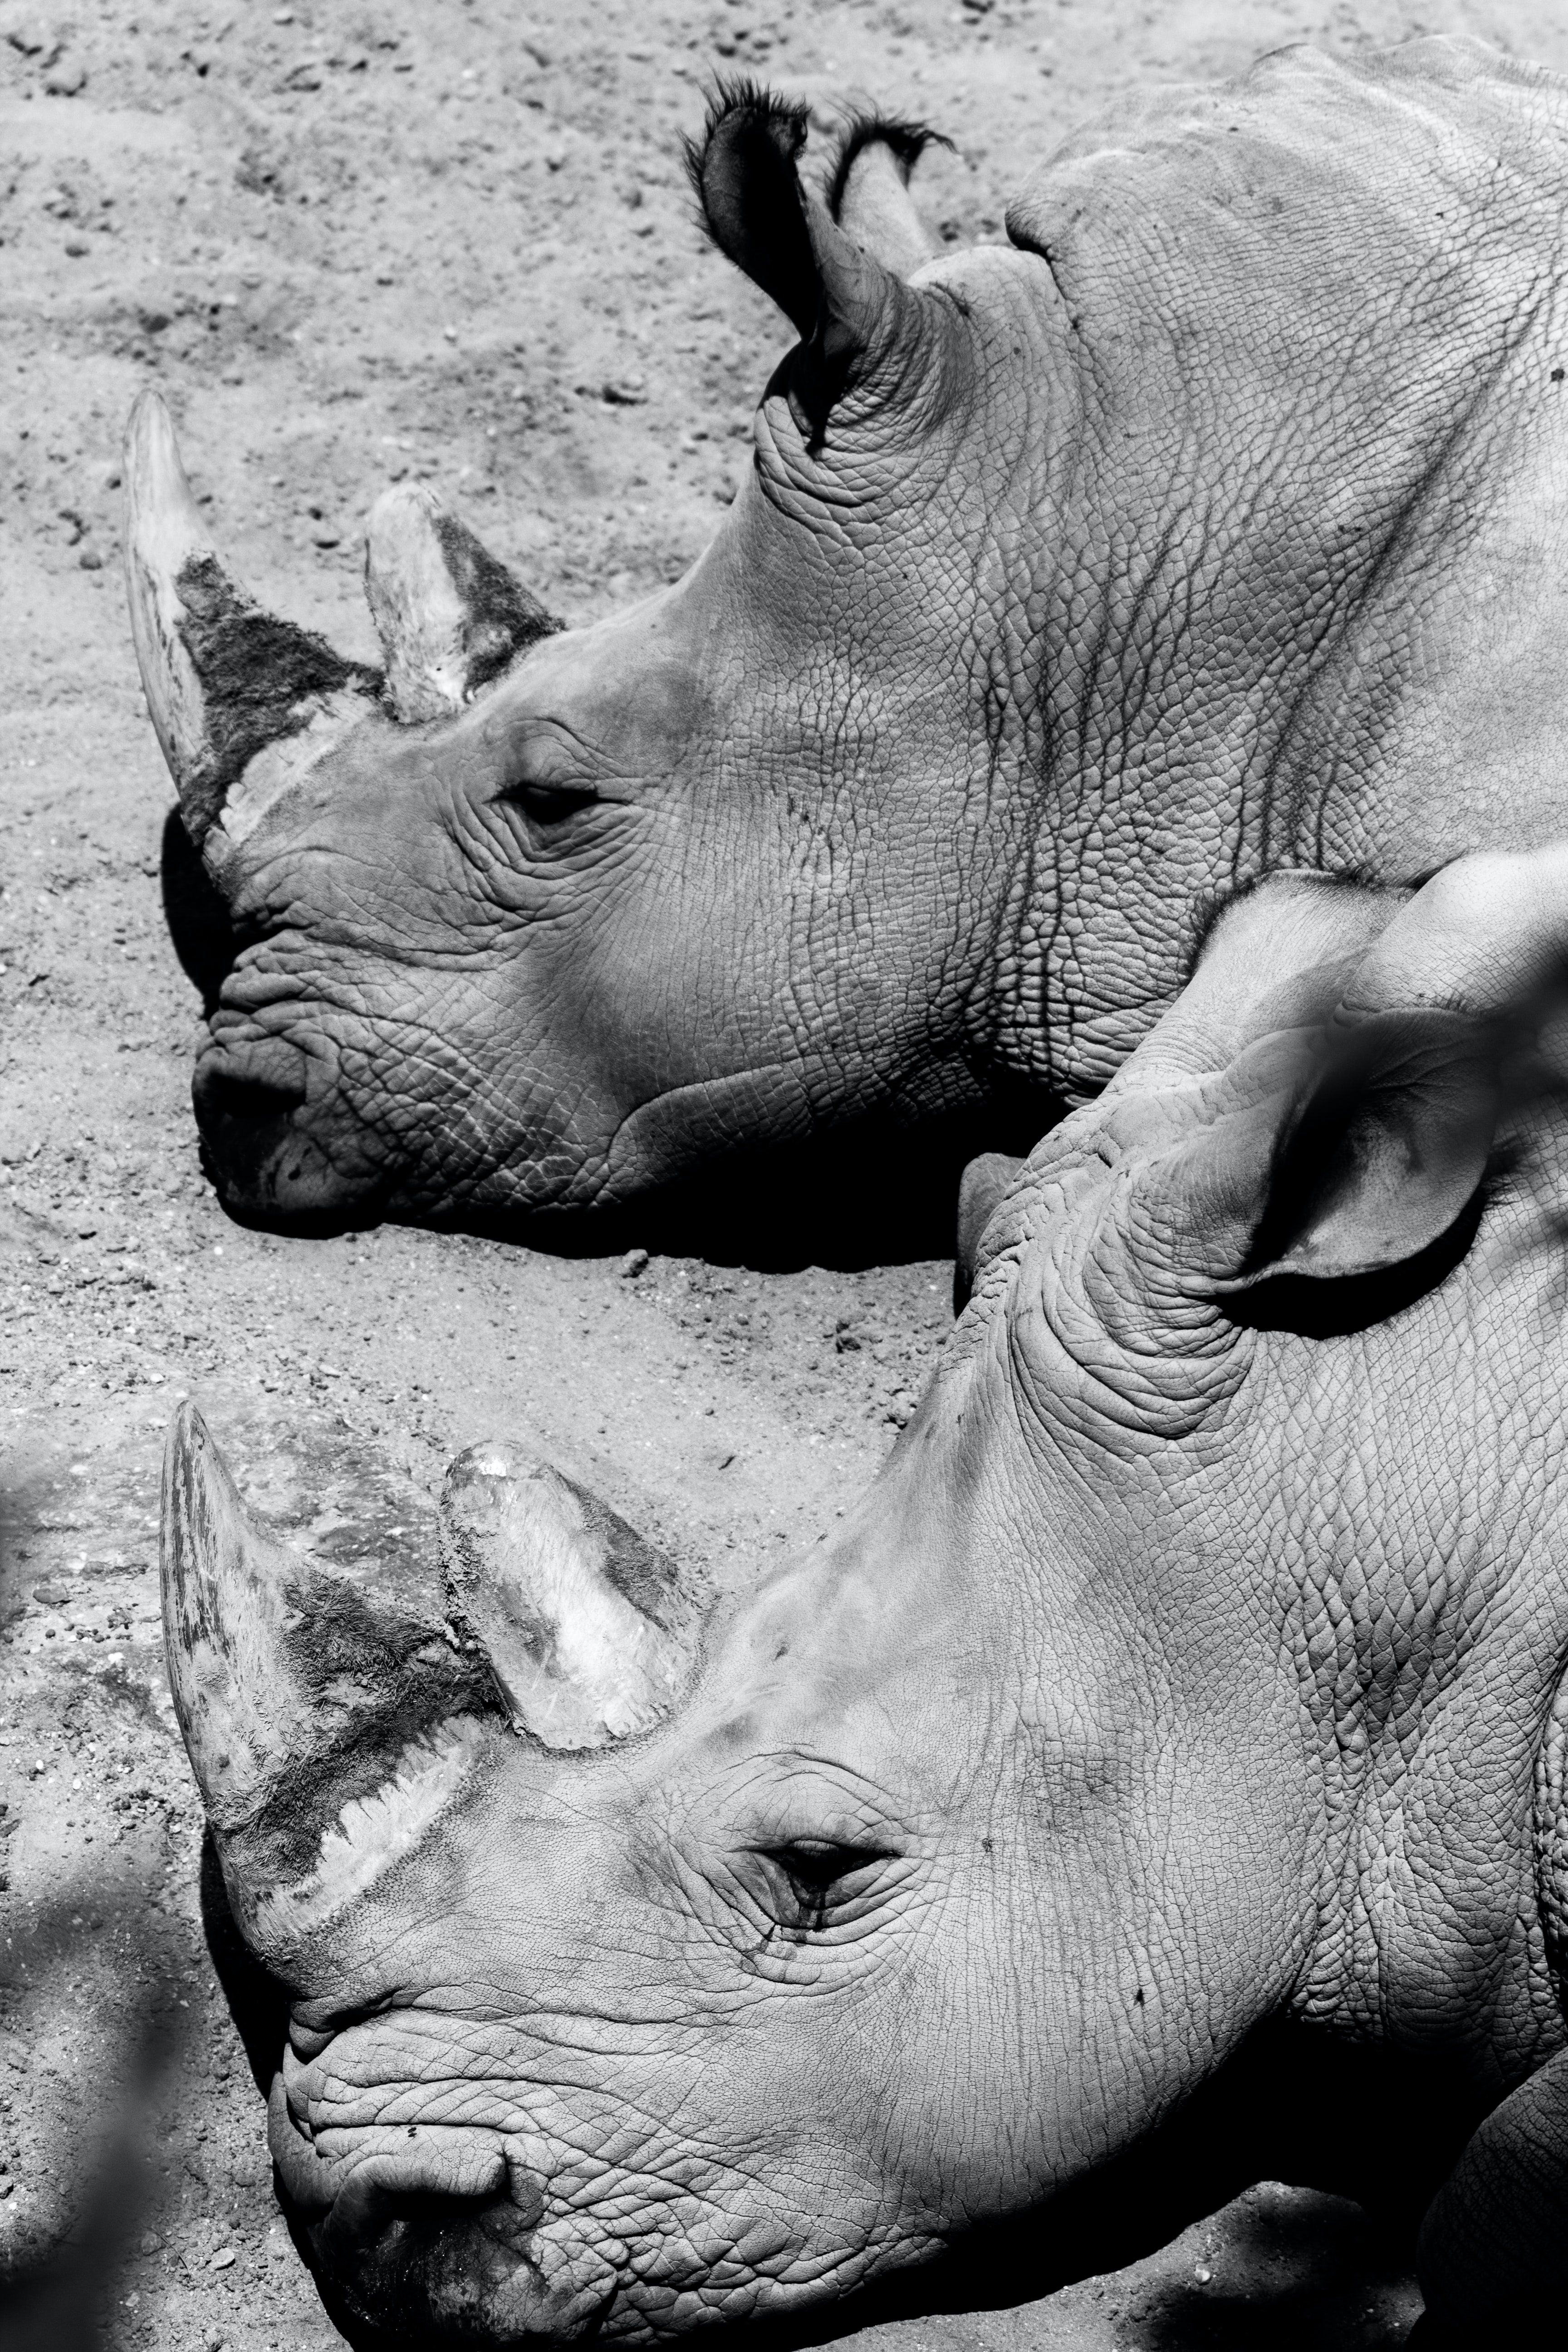 Black and white shot of two rhinos' heads laying on the ground in dirt